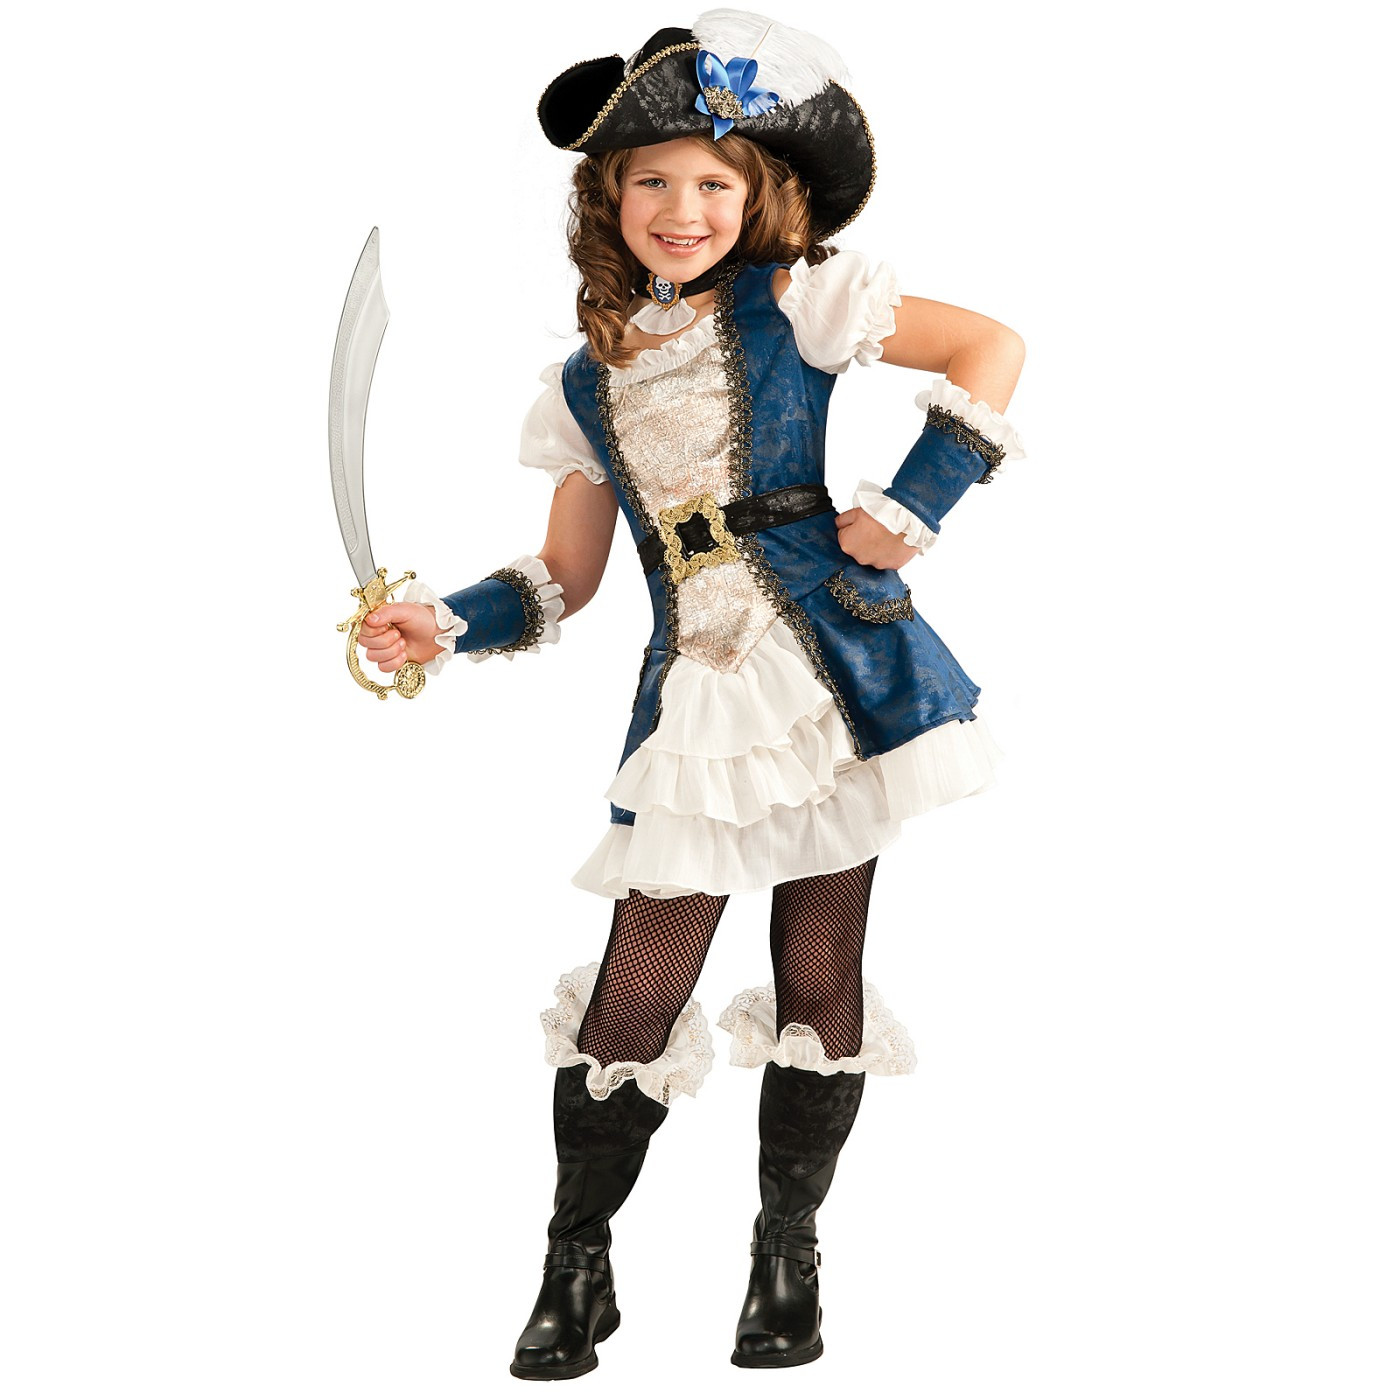 Best ideas about DIY Costumes For Girls . Save or Pin 58 Cute Halloween Costumes For 10 Year Old Girls 10 Year Now.